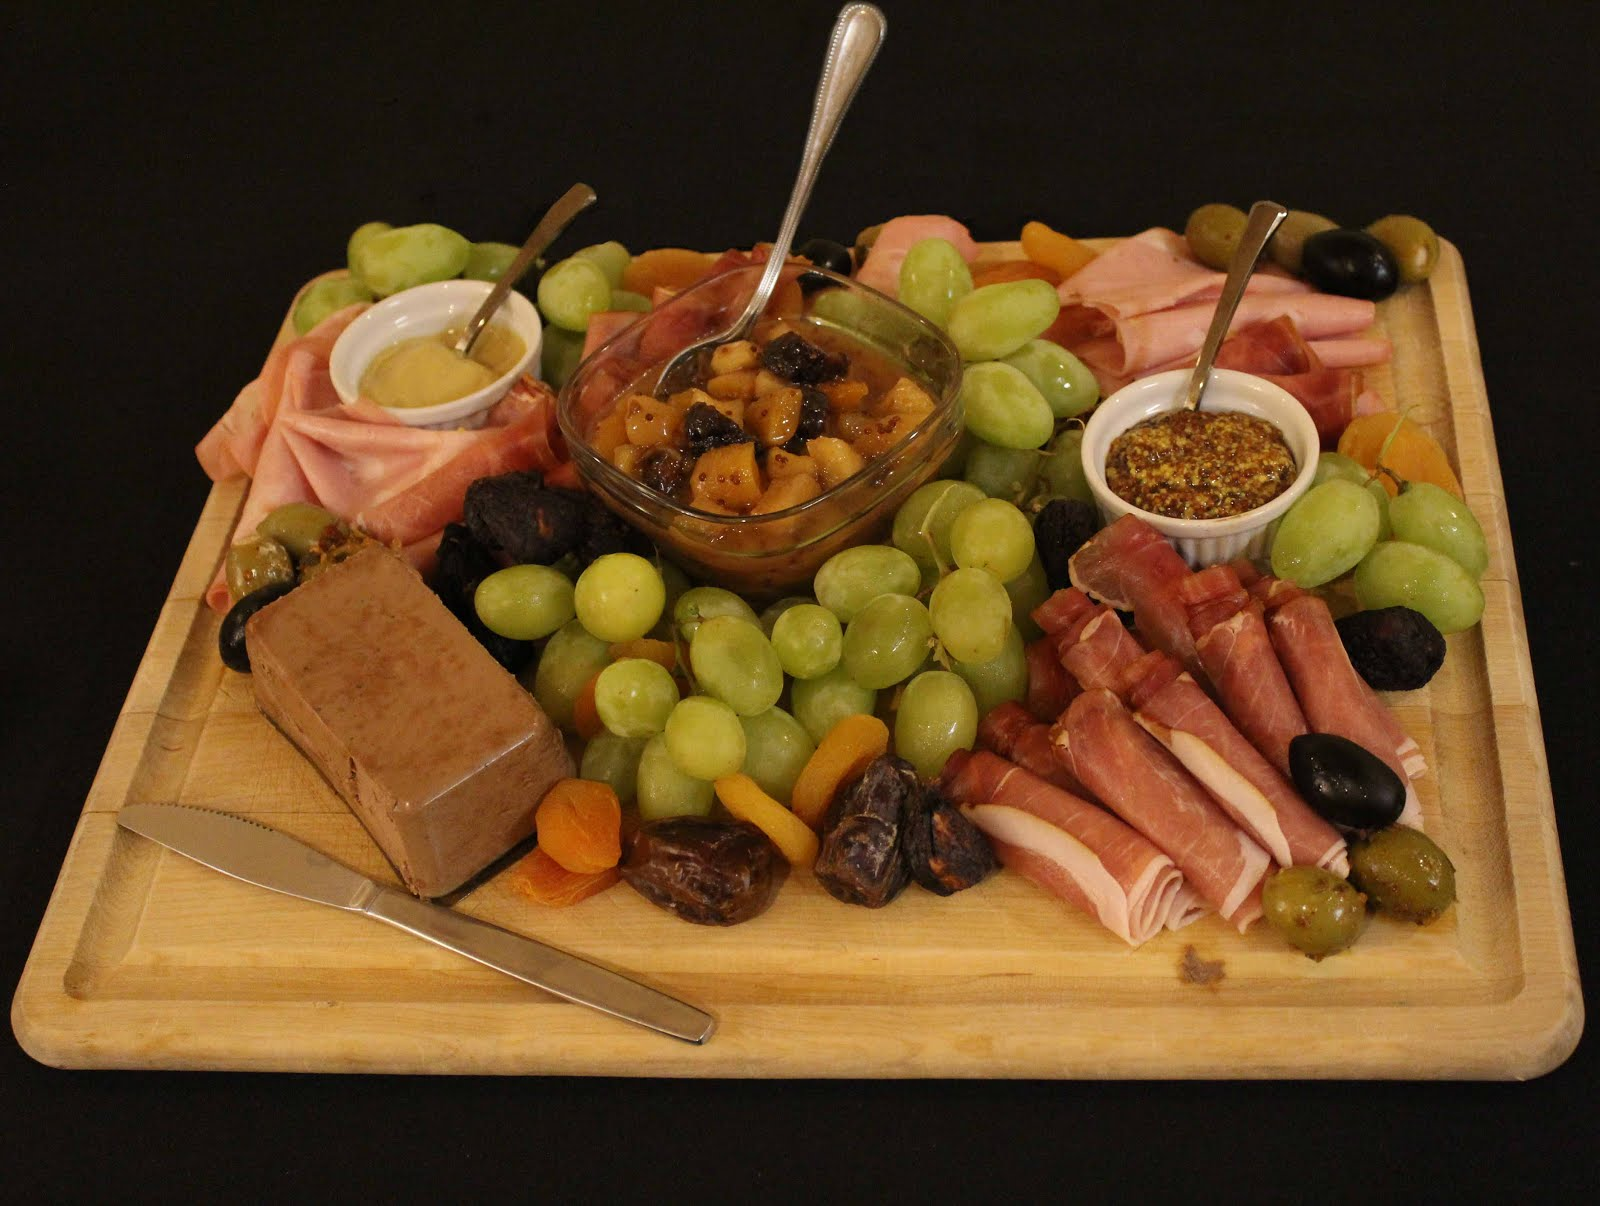 Colonel Mustard's platter of prepared meats, mustards and motarda